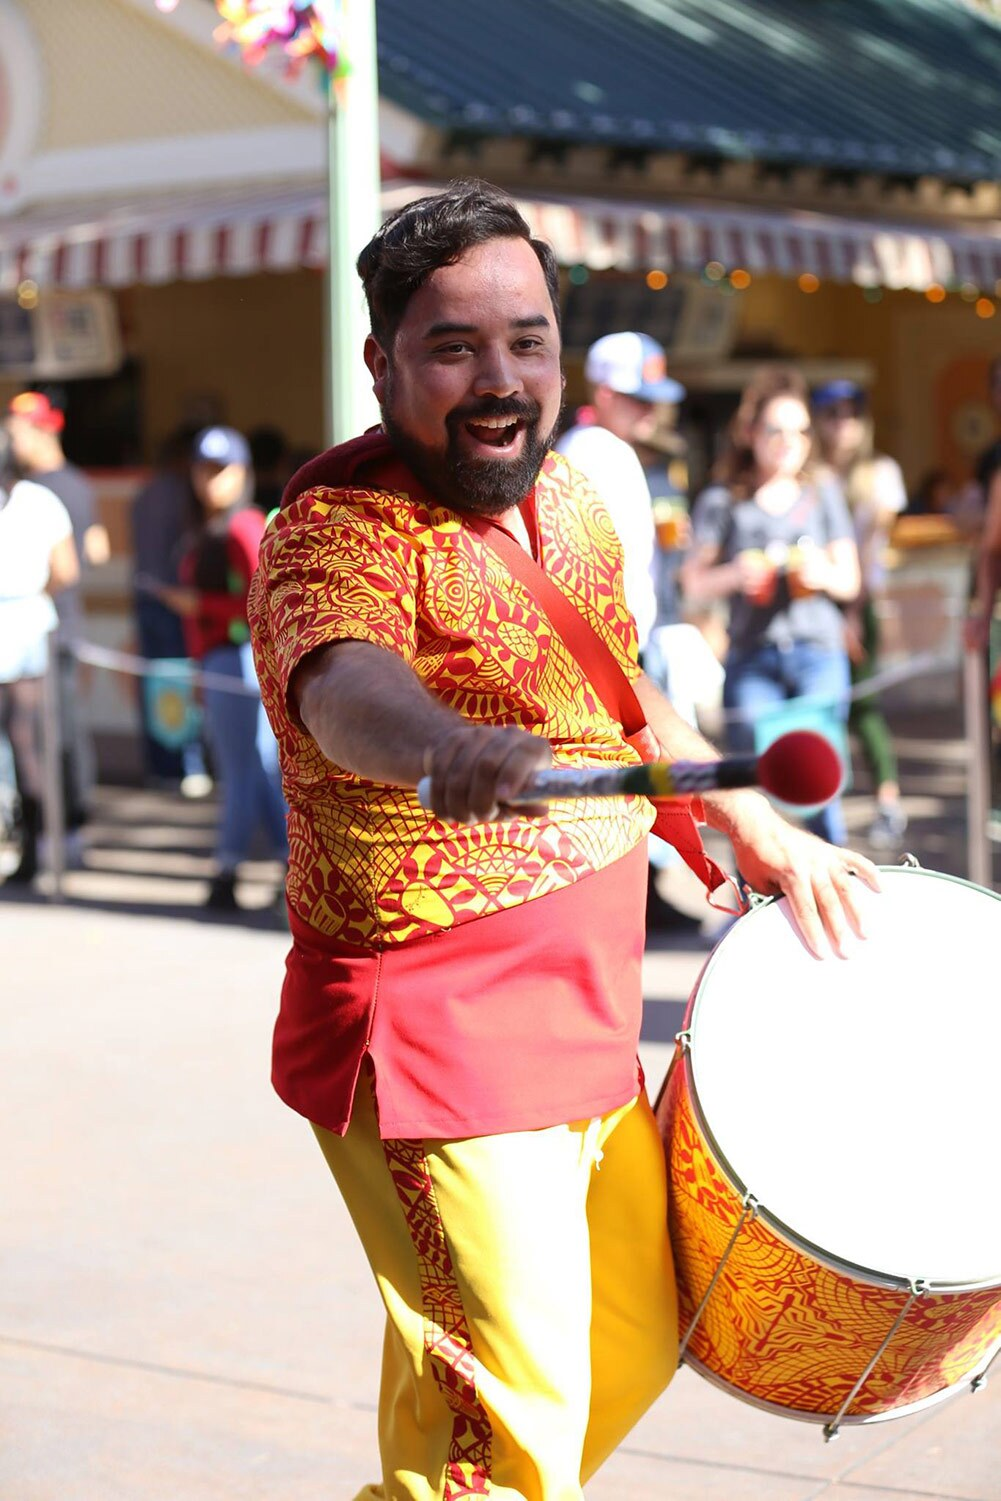 Drummer Steve Hernandez during Disney California Adventure Park's ¡Viva Navidad! Street Party parade | Courtesy of Viver Brasil